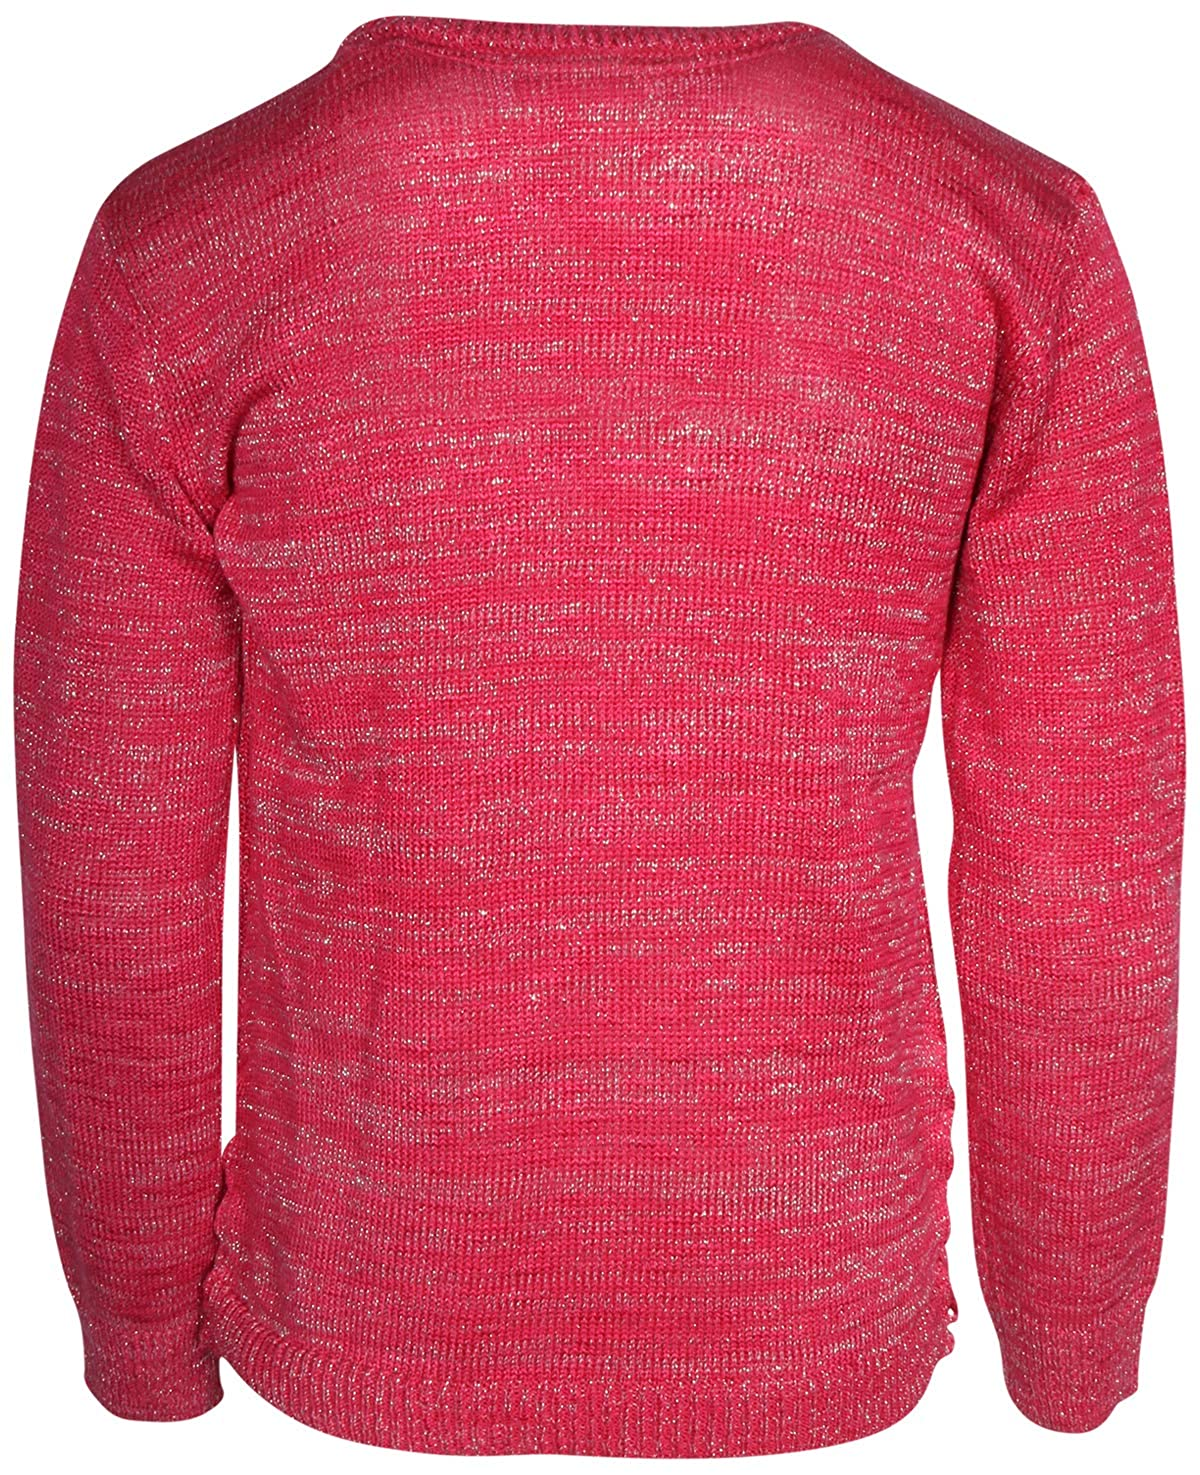 DKNY Girls Long Sleeve Fashion Pullover Sweater